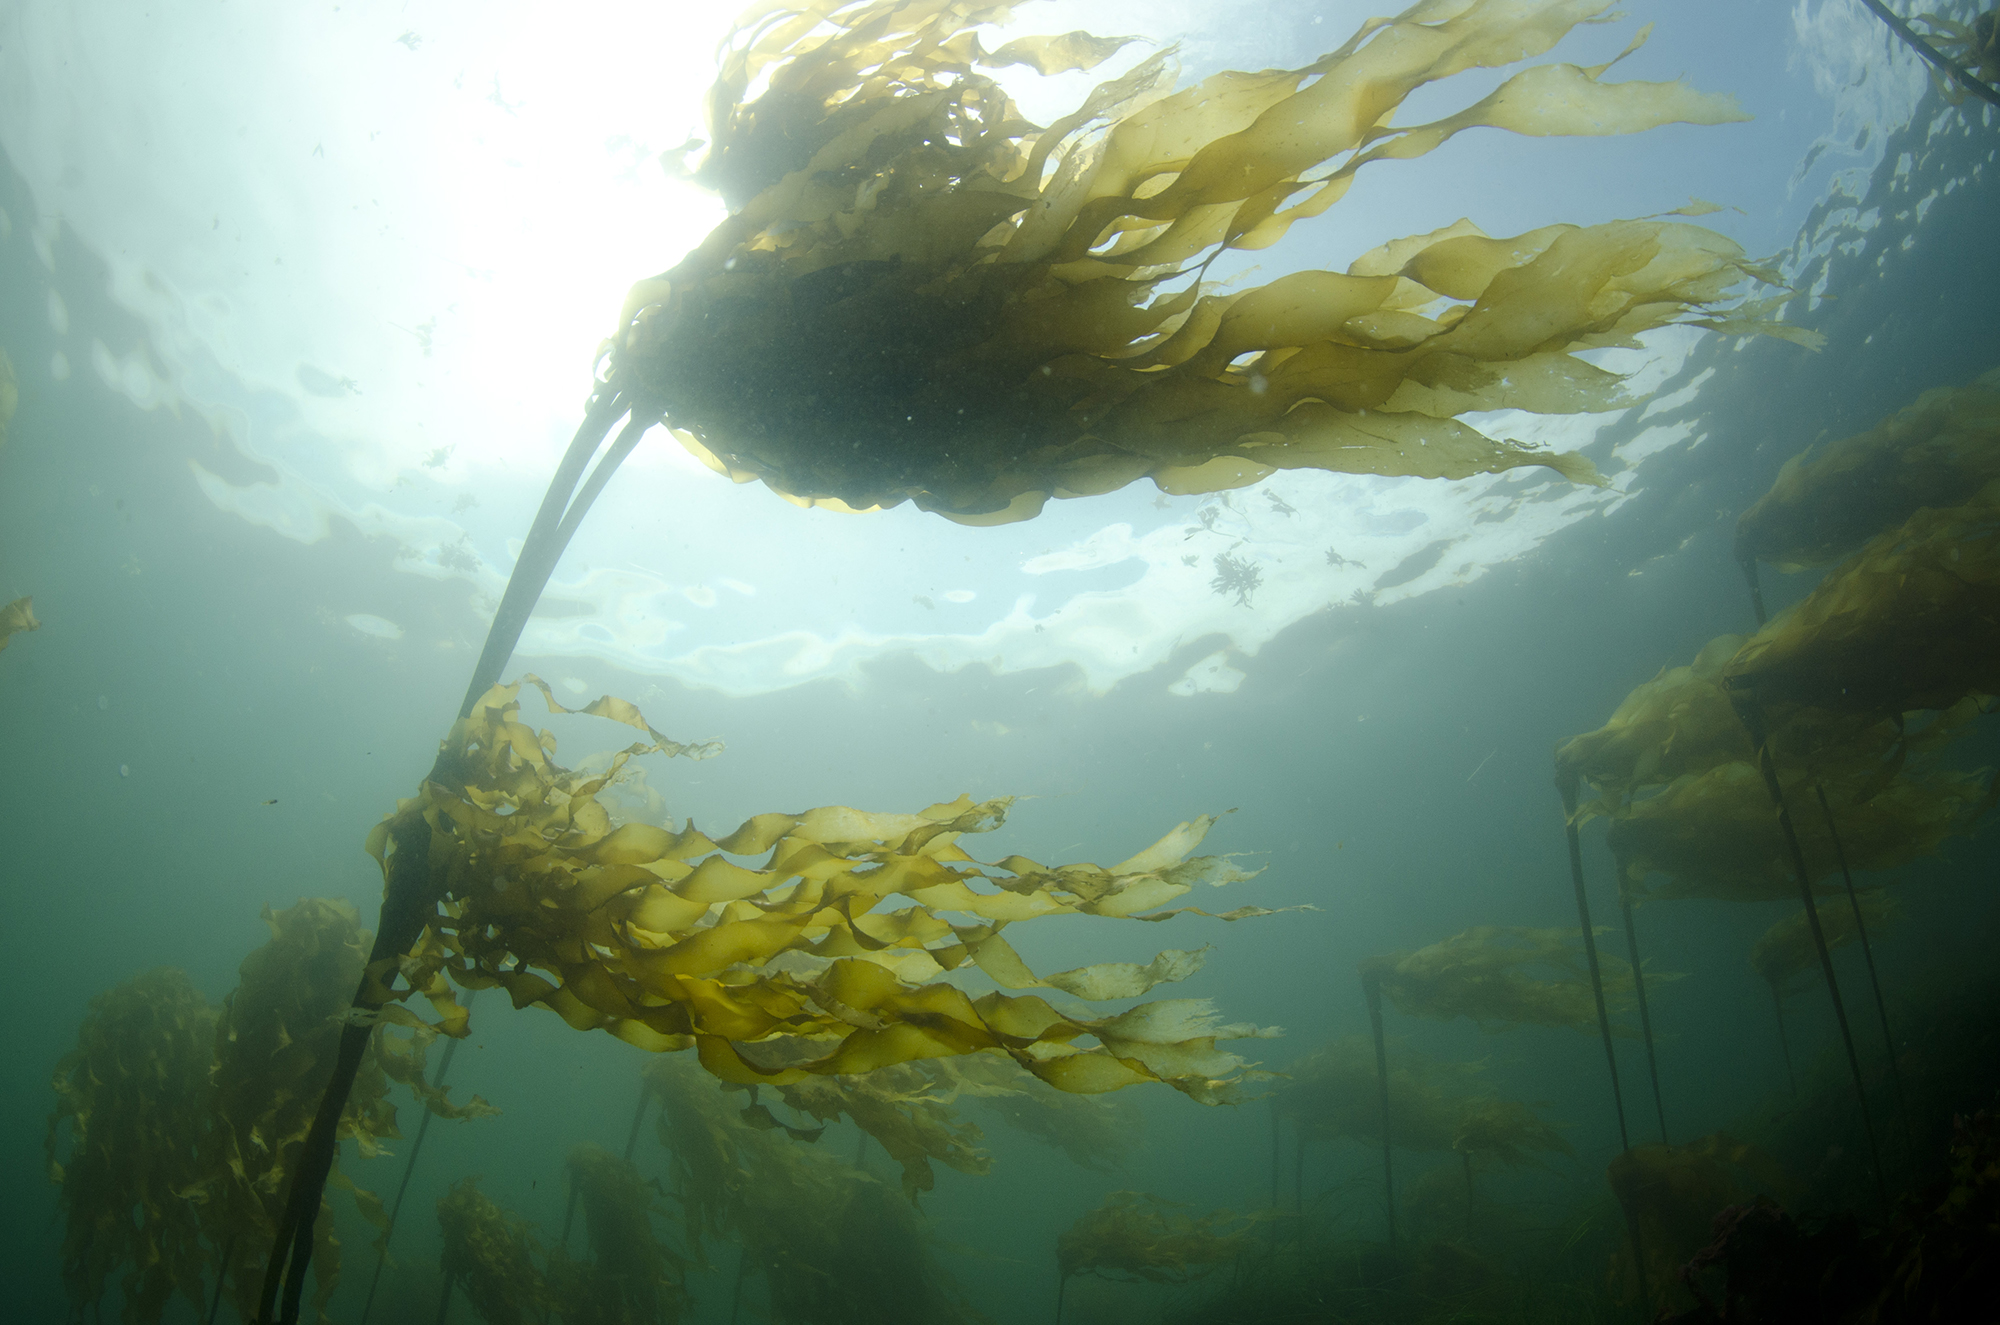 A kelp forest maintained by the Haida Gwaii, along the coast of British Columbia. Photo: Mark Wunsch.